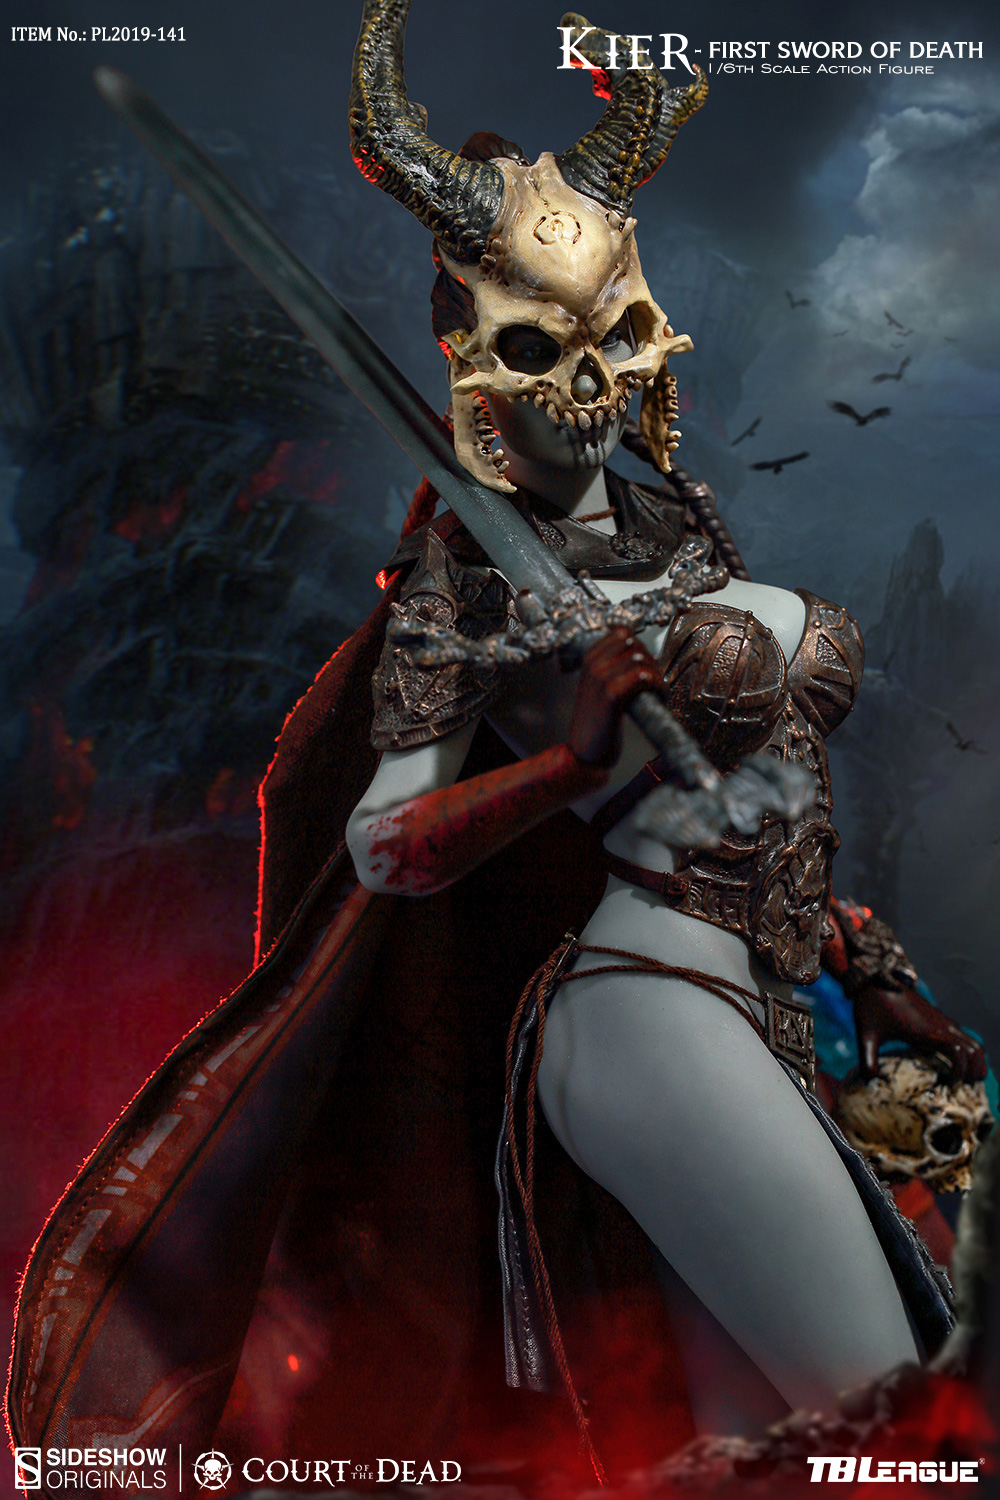 tbleague - NEW PRODUCT: TBLeague & Sideshow: 1/6 Court of the Dead - Valkyrie Cole / Kier movable doll (PL2019-141) 16260610